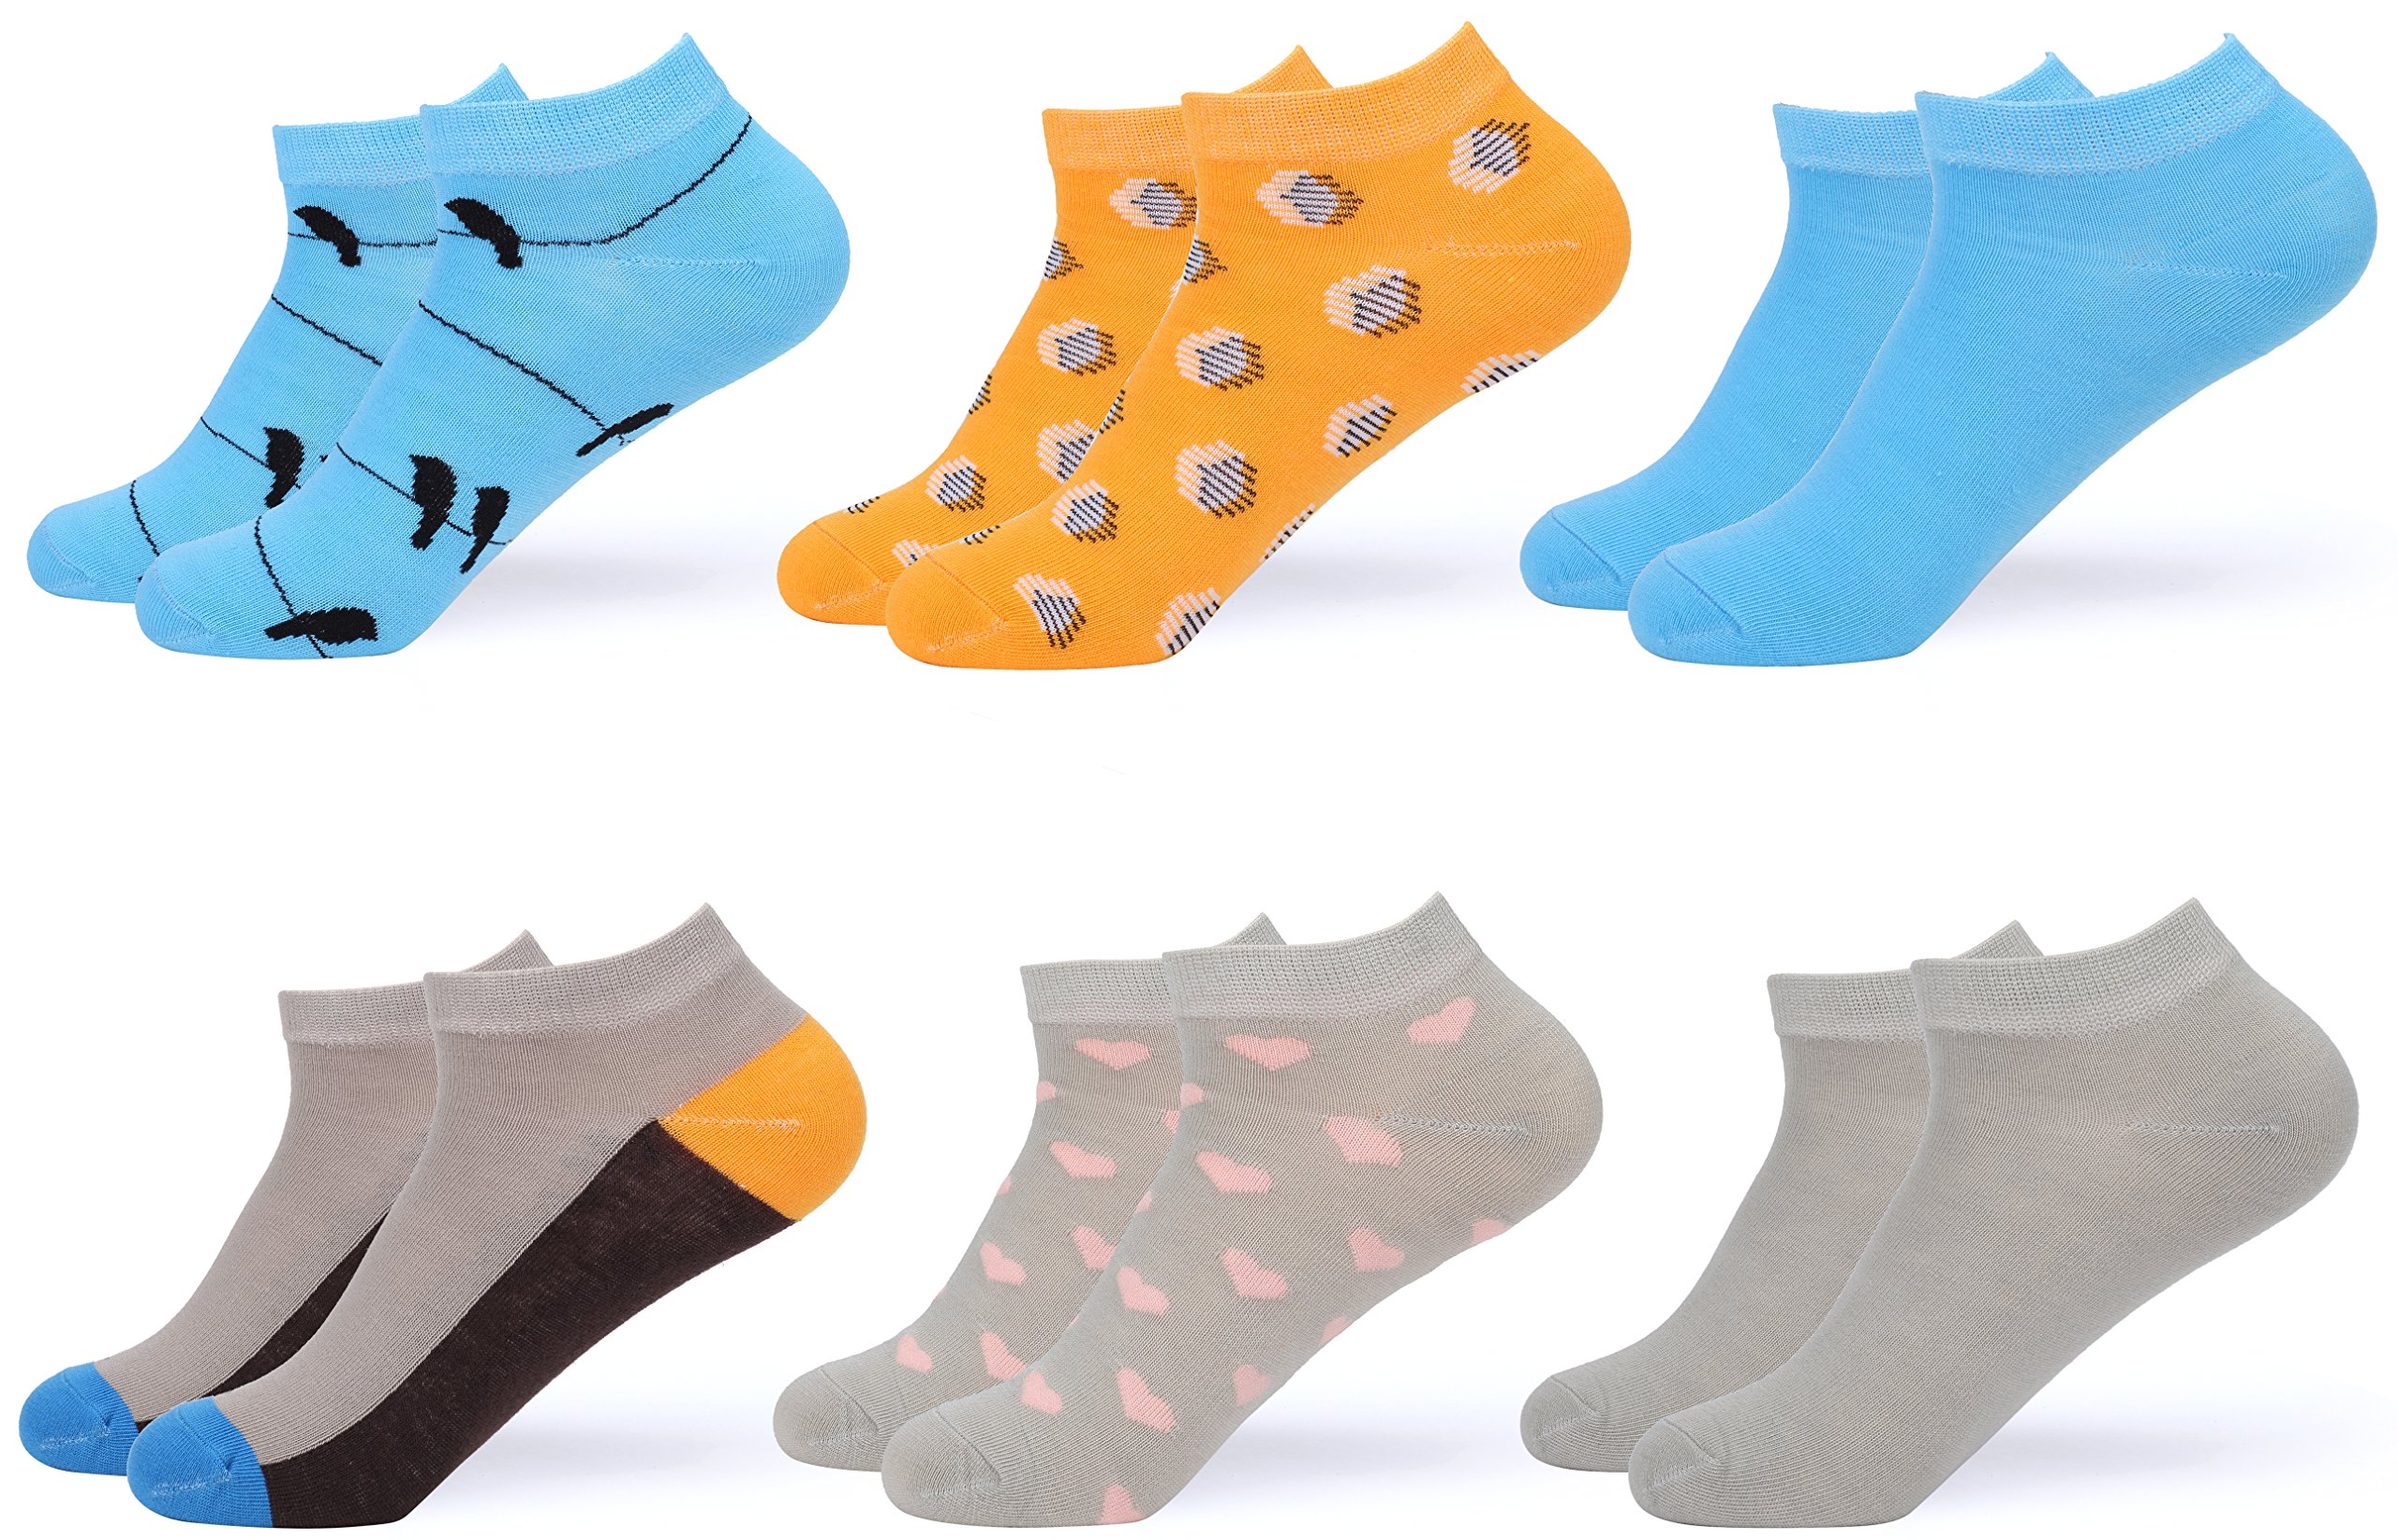 Gallery Seven Women's Ankle Socks - Low Cut Colorful Socks For Women - Size 9-11 - 6 Pack - Style 5